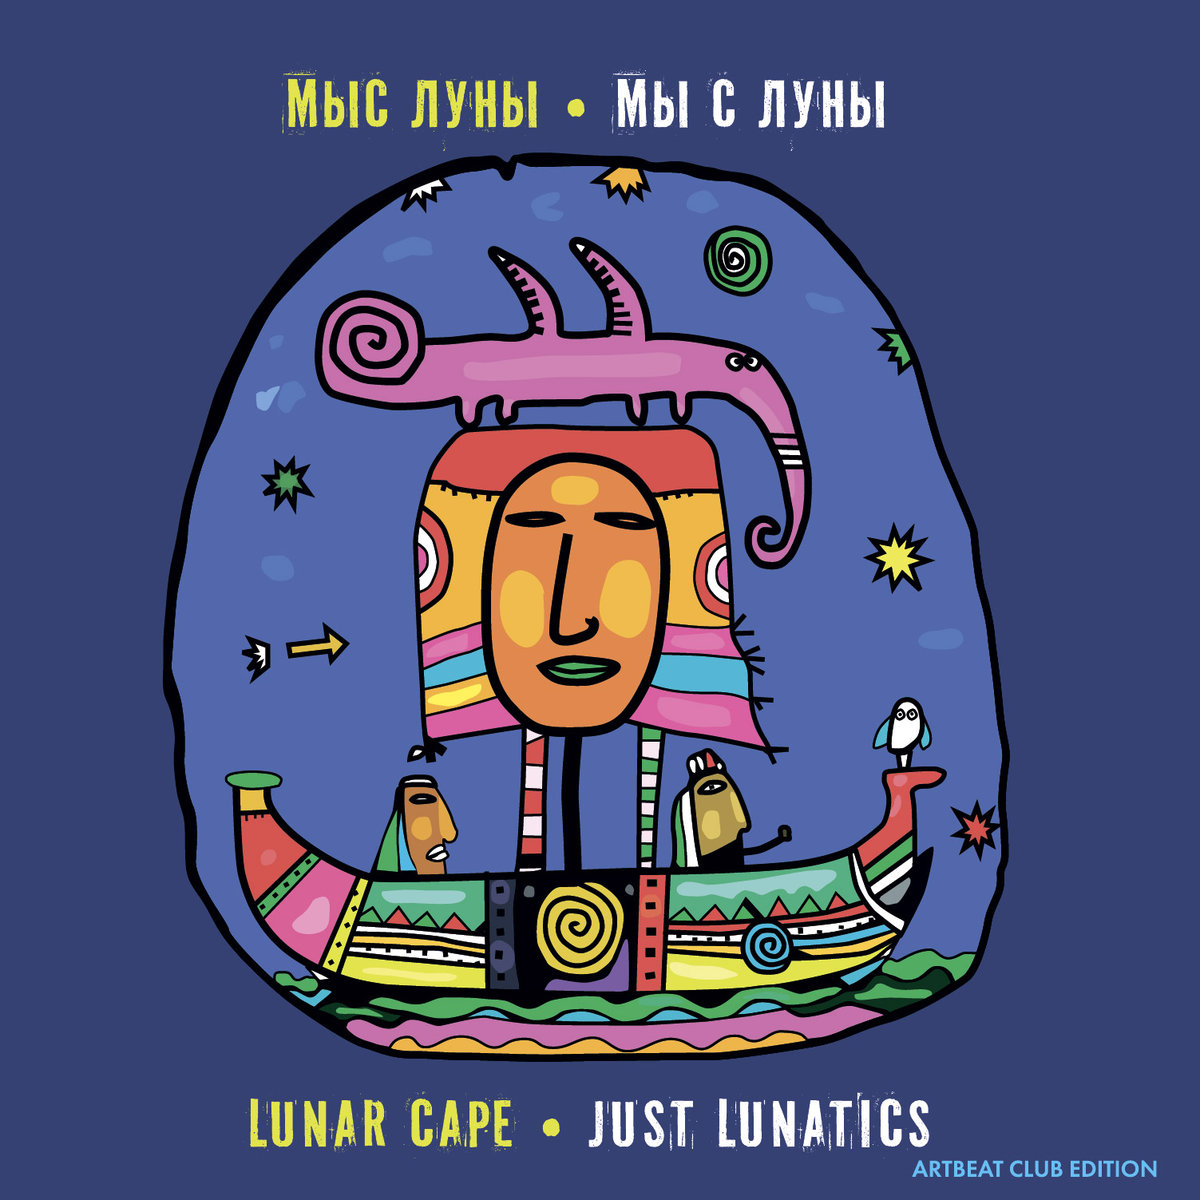 Lunar Cape - Carré @ 'Just Lunatics' album (jazz fusion, soundtrack)